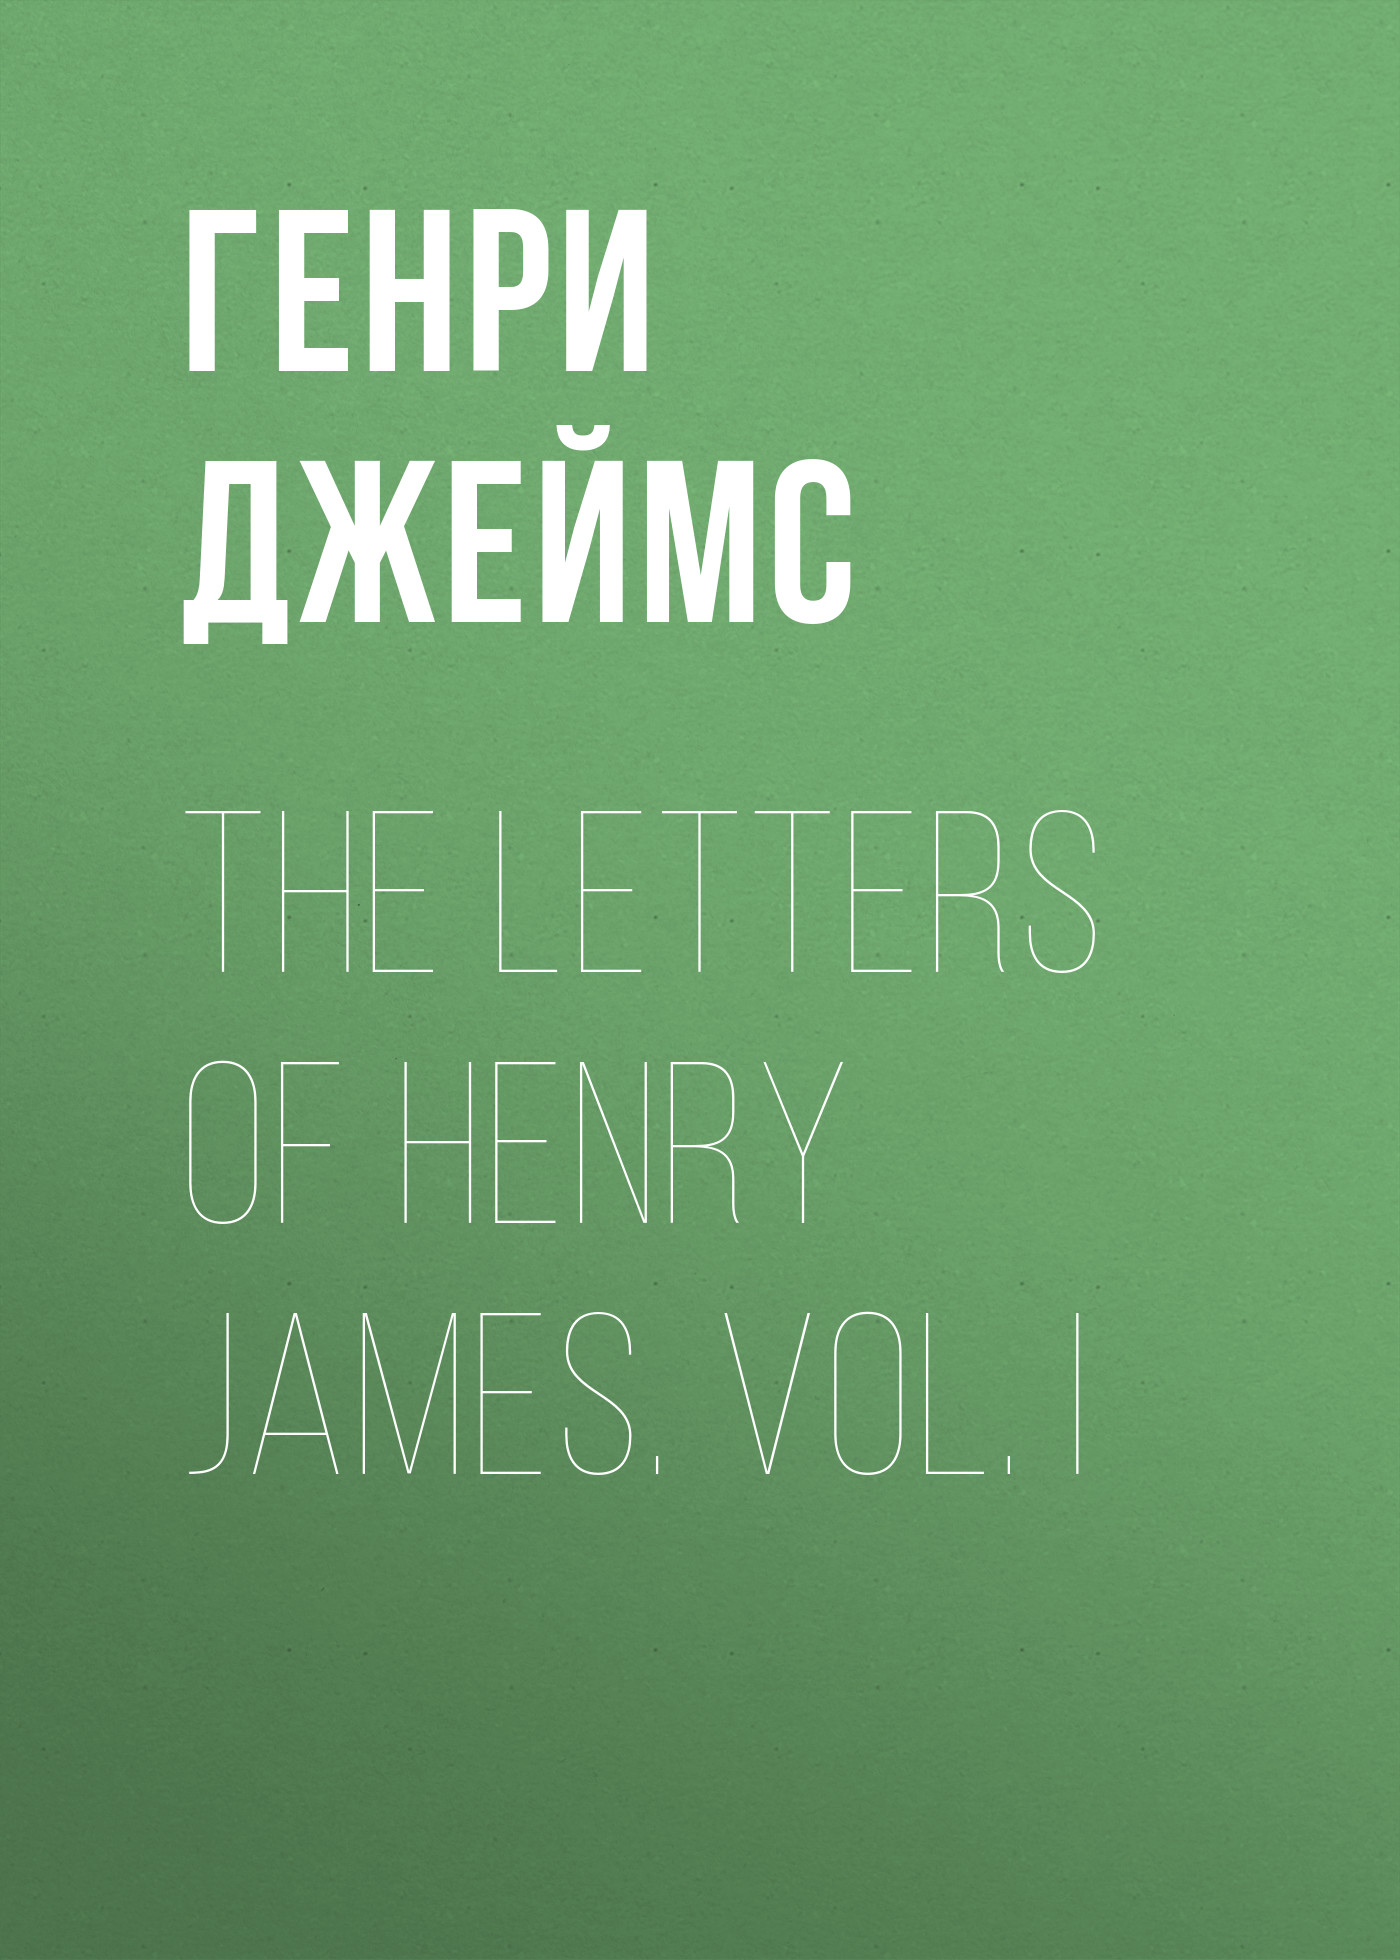 Генри Джеймс The Letters of Henry James. Vol. I генри джеймс the bostonians vol i